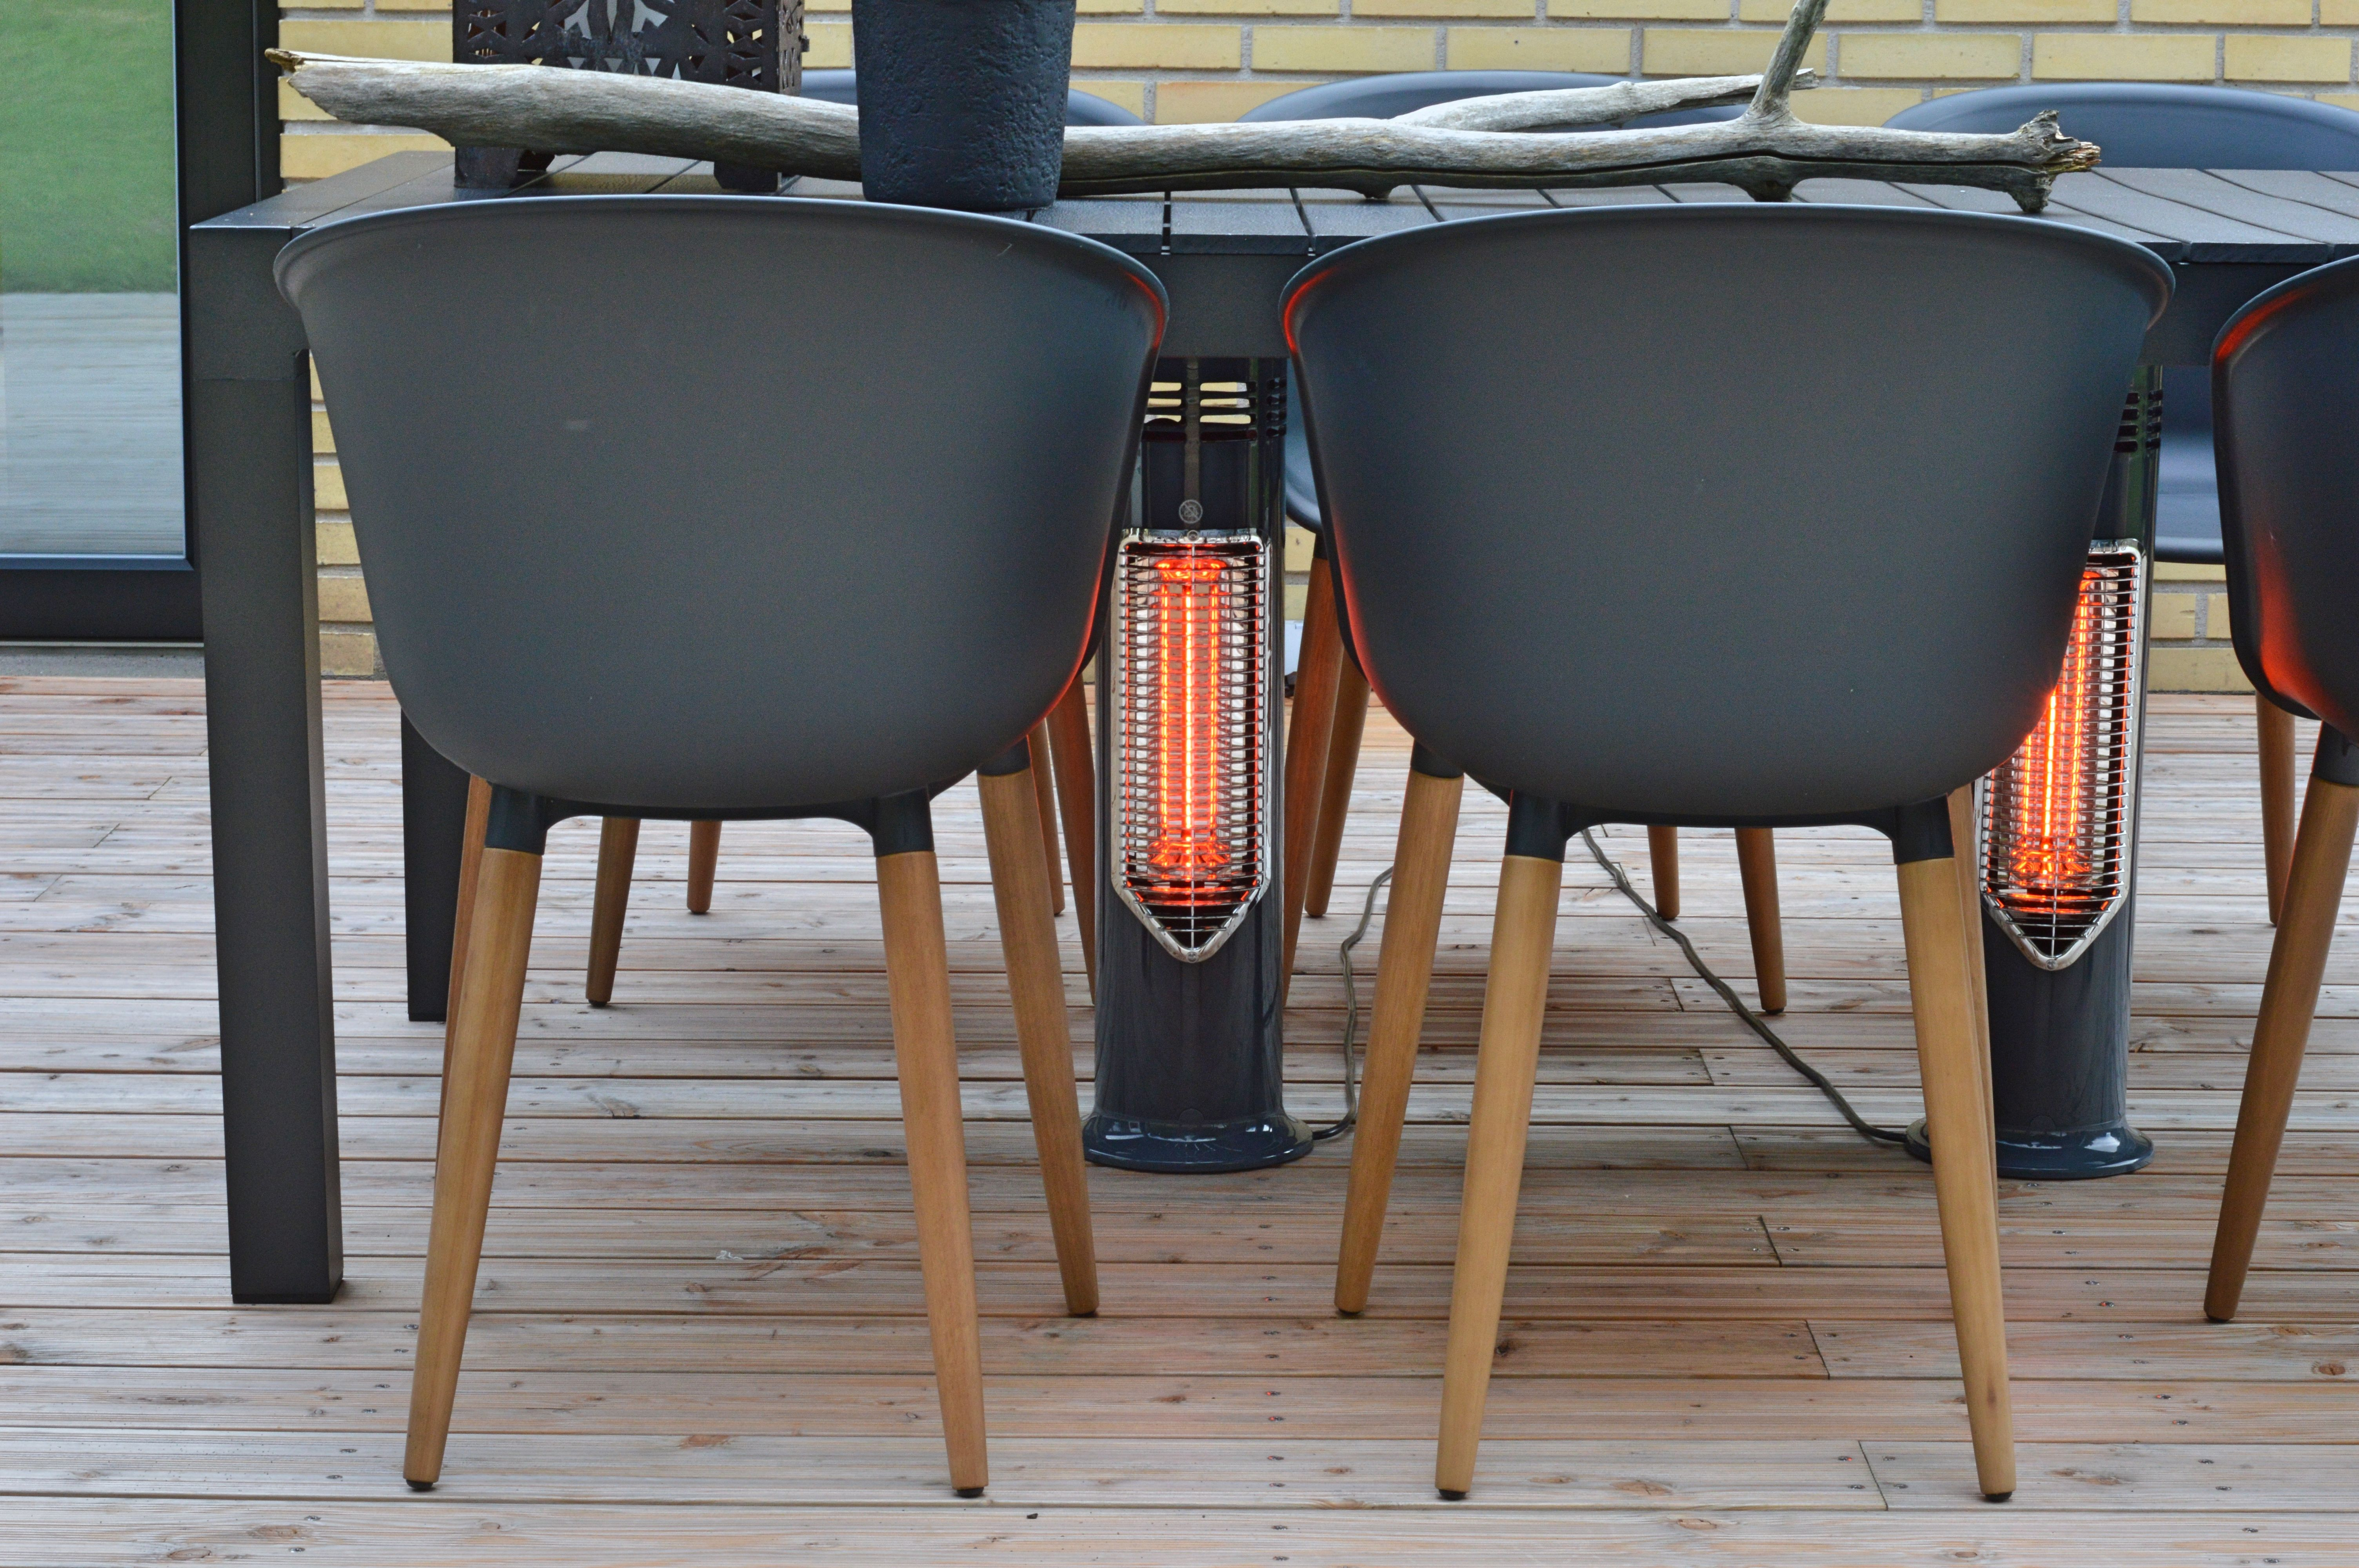 Outdoor Table Heating Safe To Touch Patio Heater Danish Design Imus Patio Heater Outdoor Heating En Fire Sense Patio Heater Outdoor Heating Patio Heater